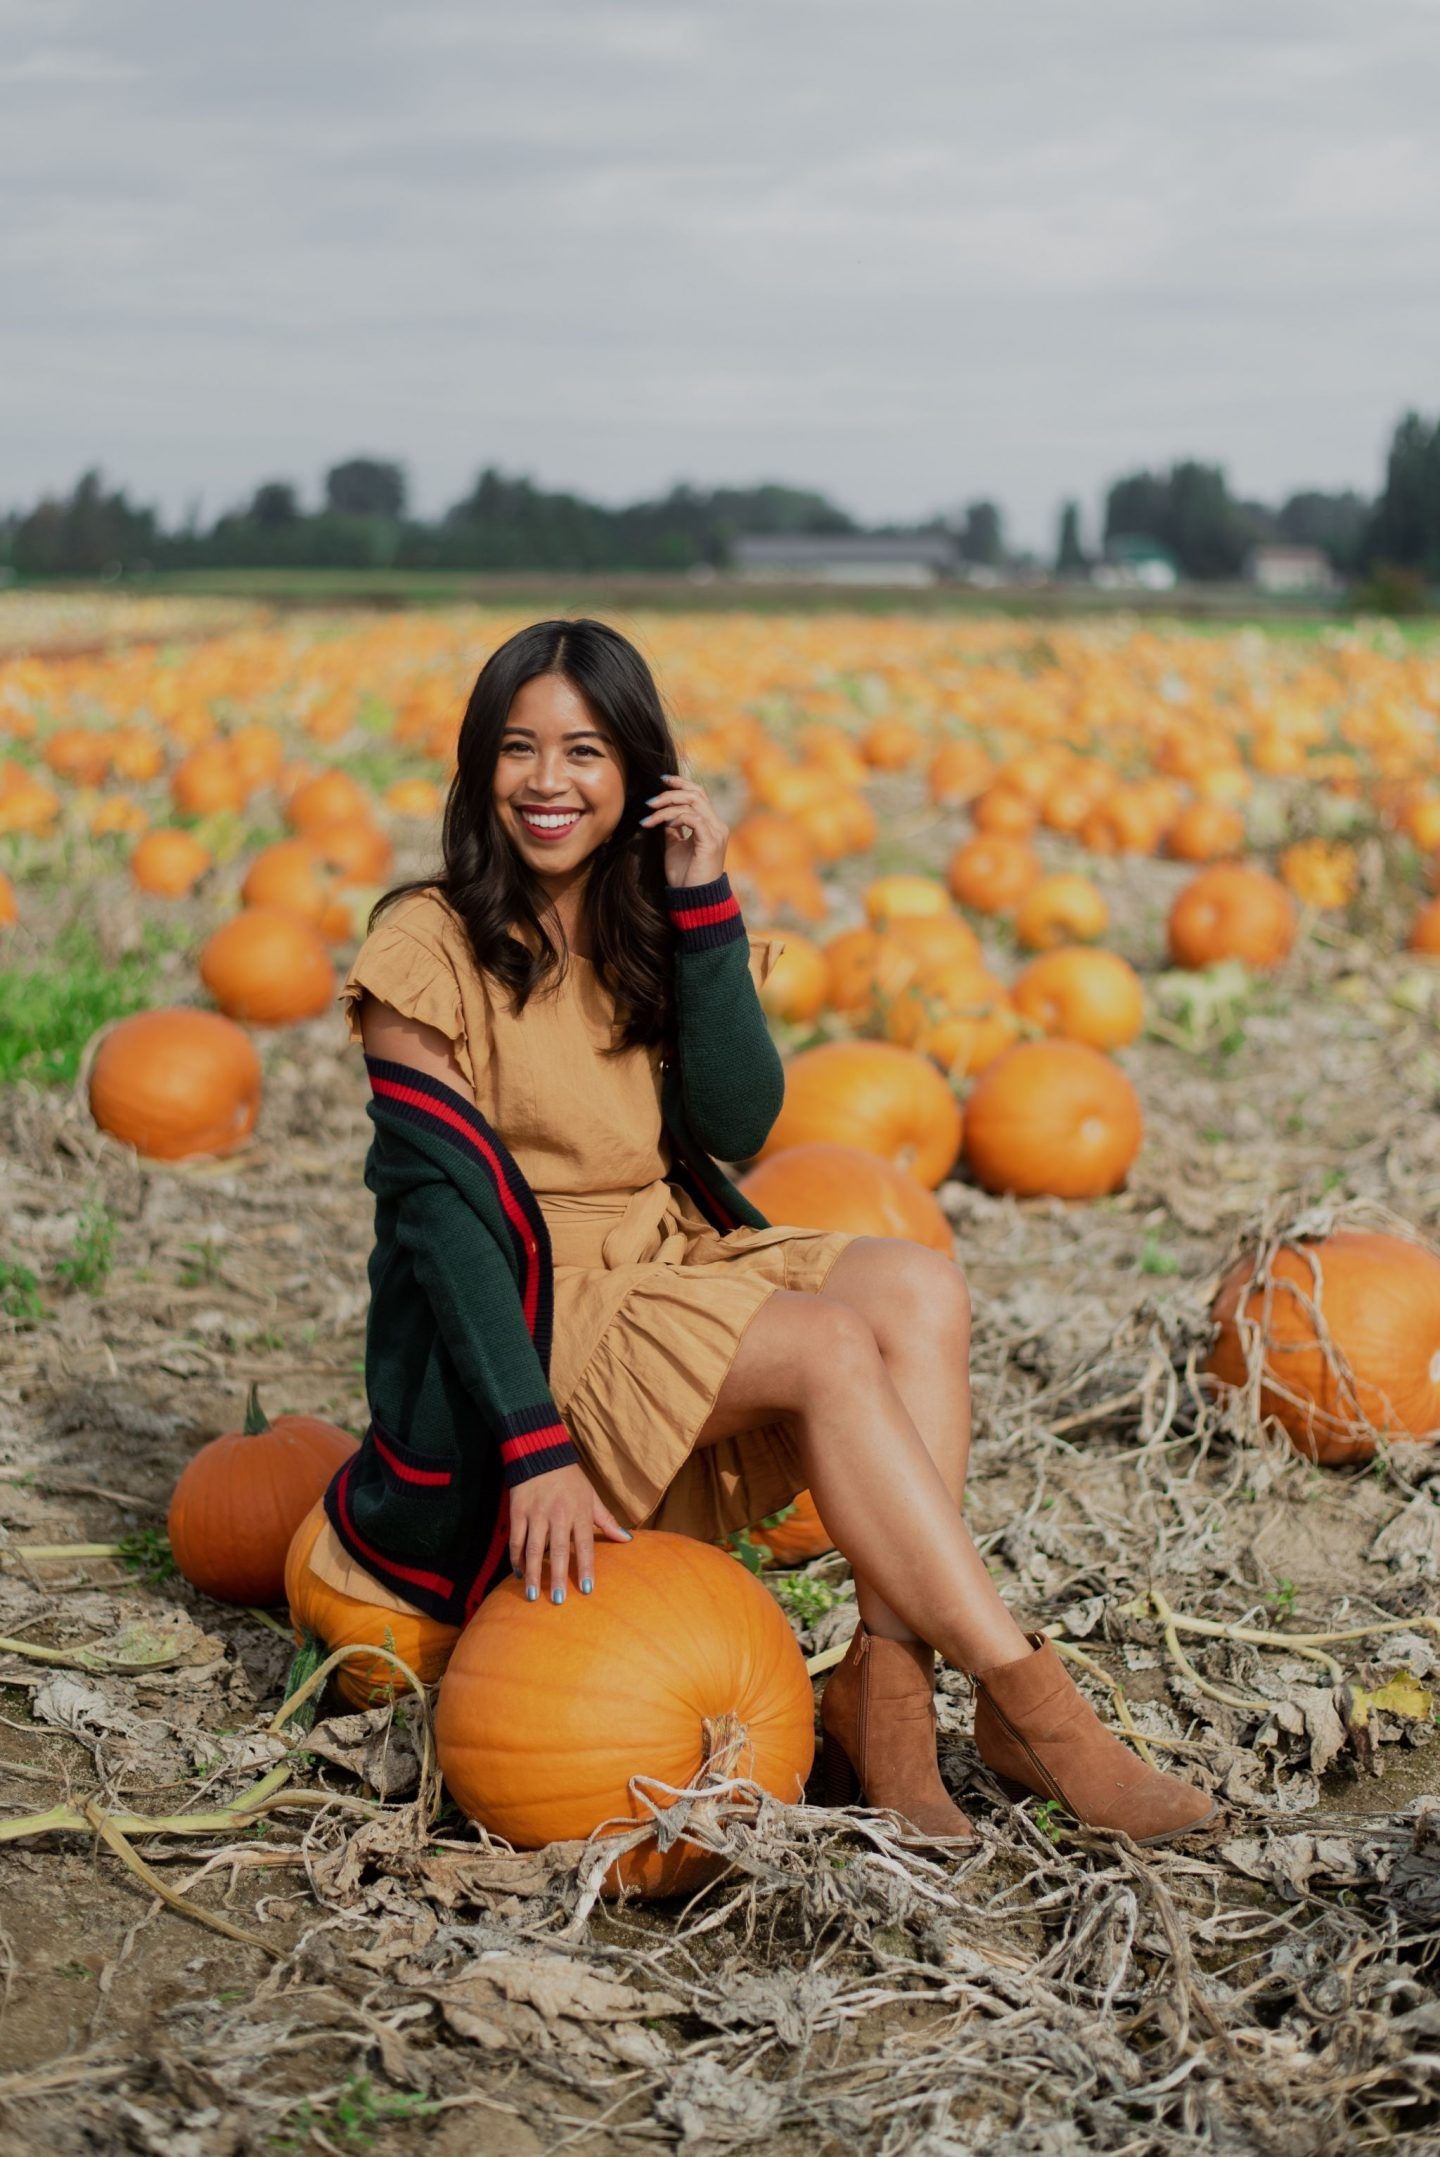 6 Pumpkin Patch Outfit Ideas You Can Wear This Fall - Emma's Edition